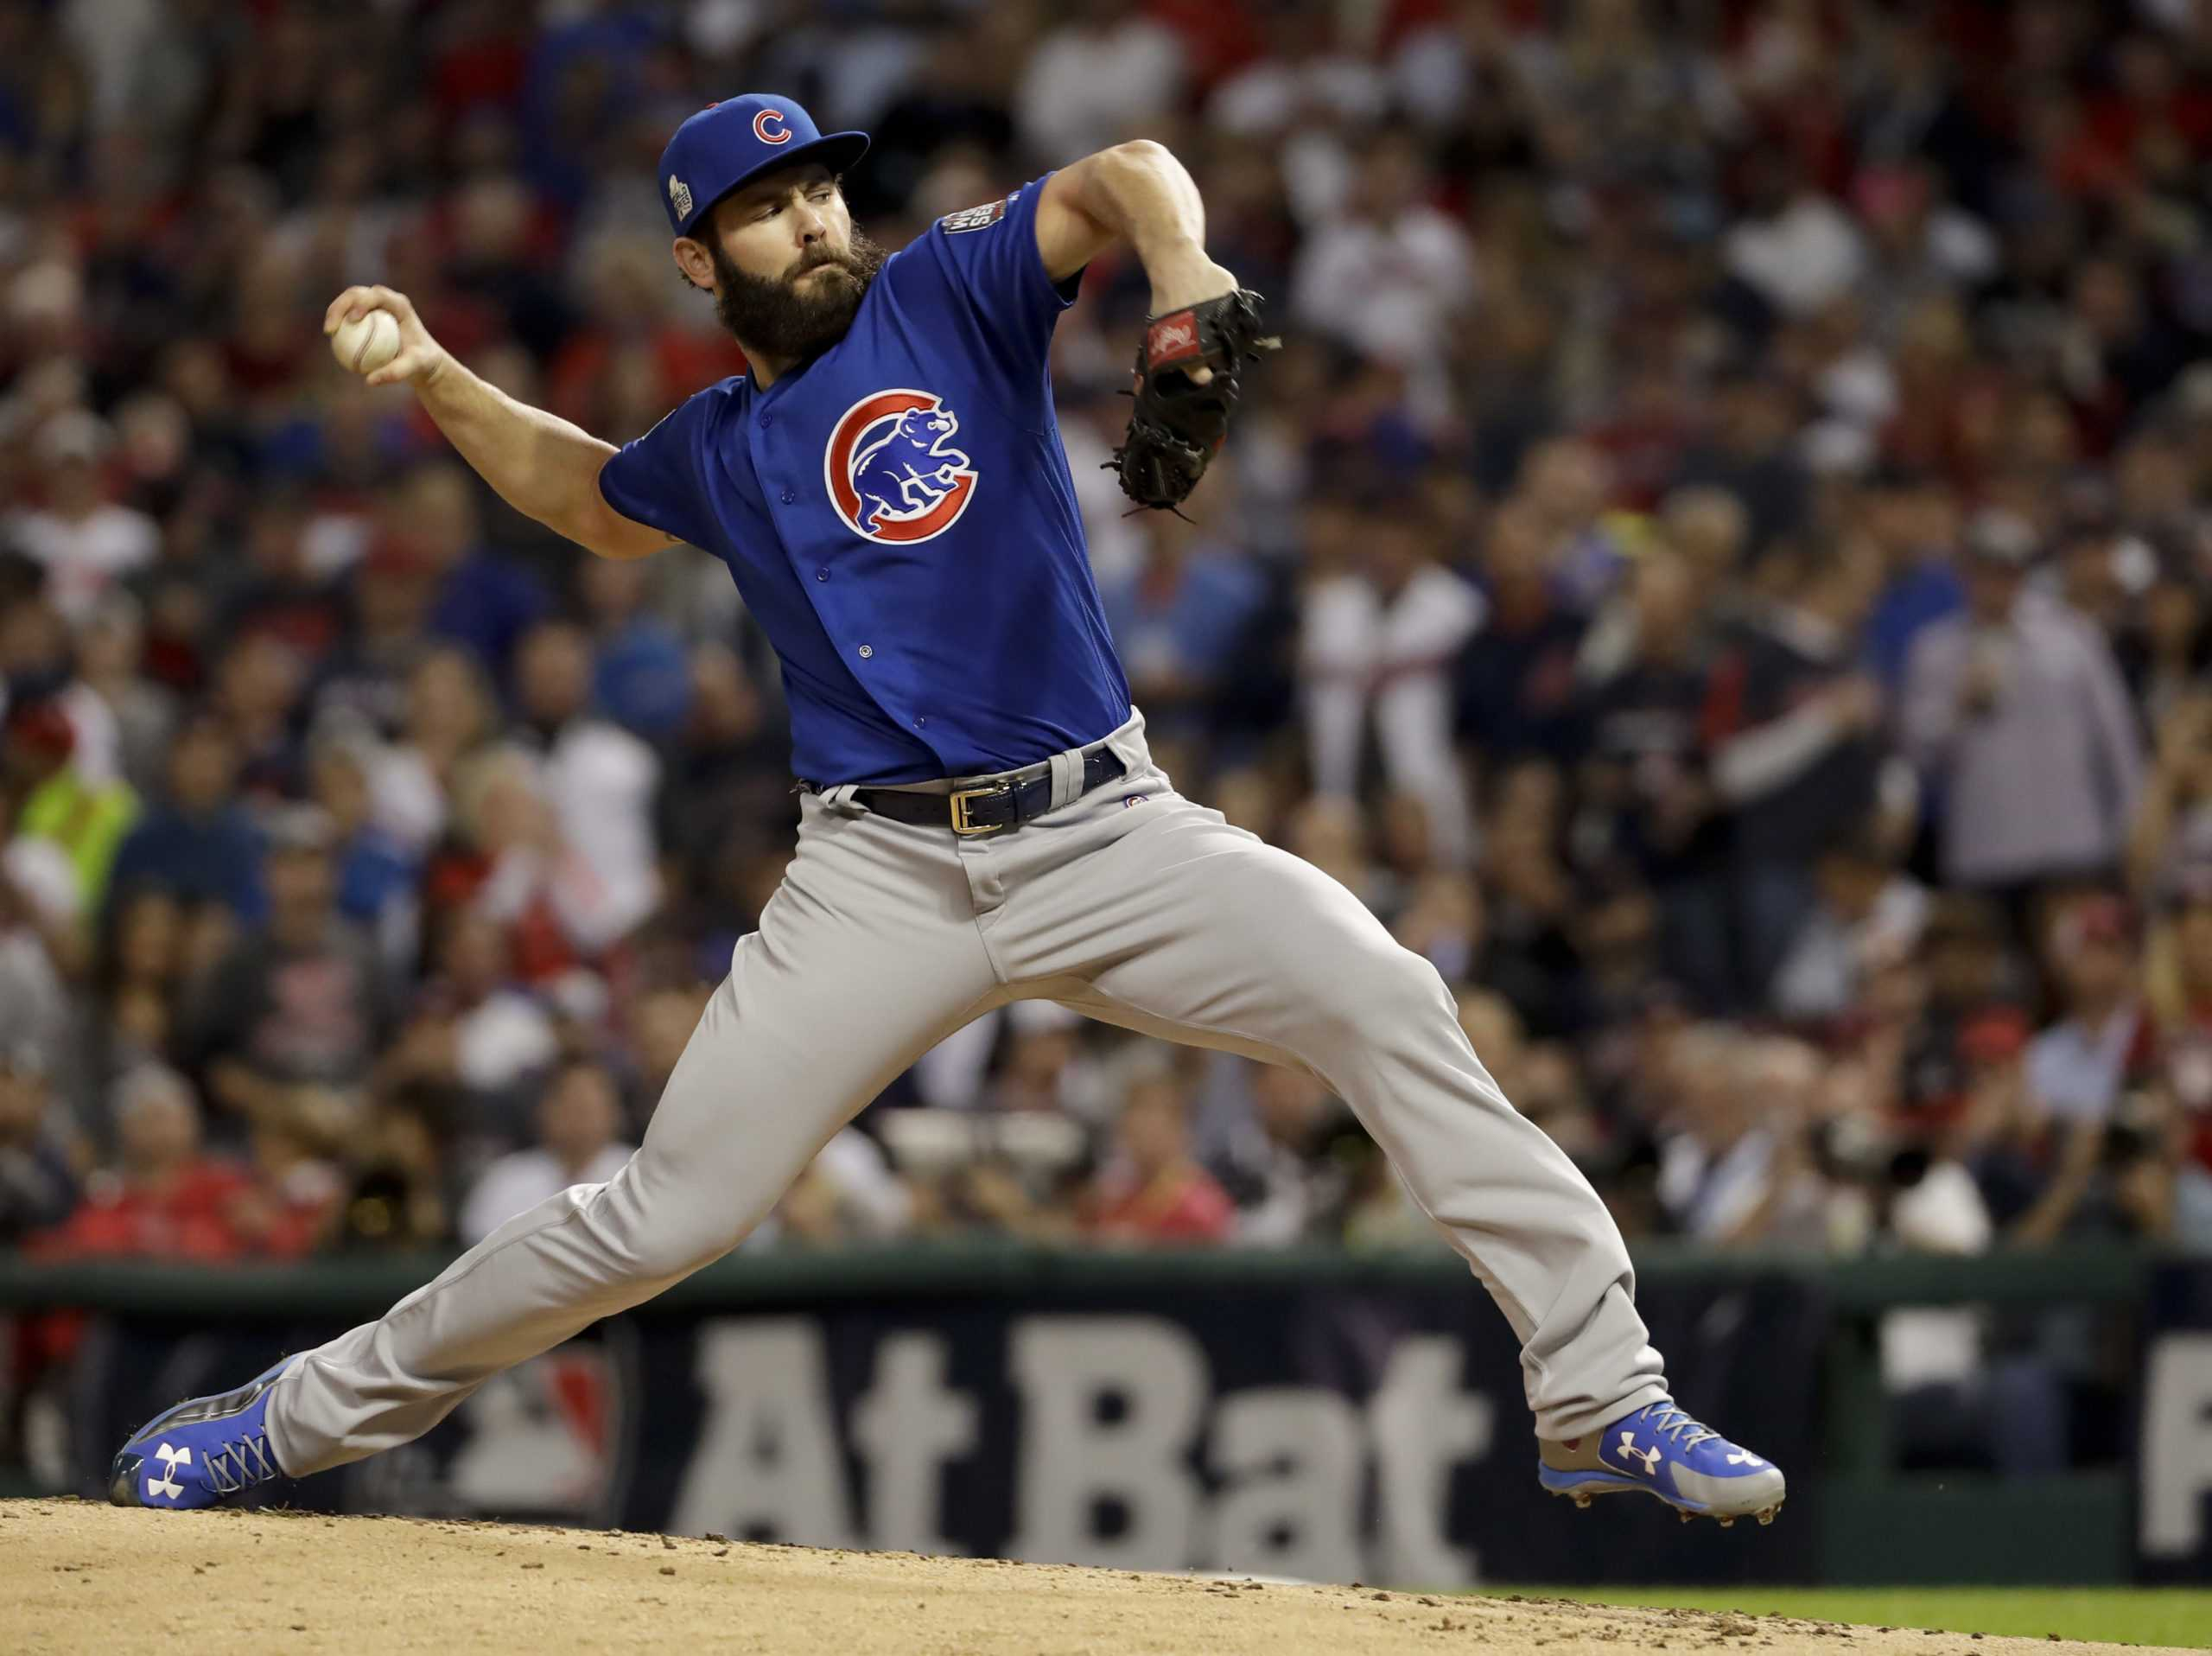 990228550b4 Chicago Cubs starting pitcher Jake Arrieta throws against the Cleveland  Indians during the first inning of